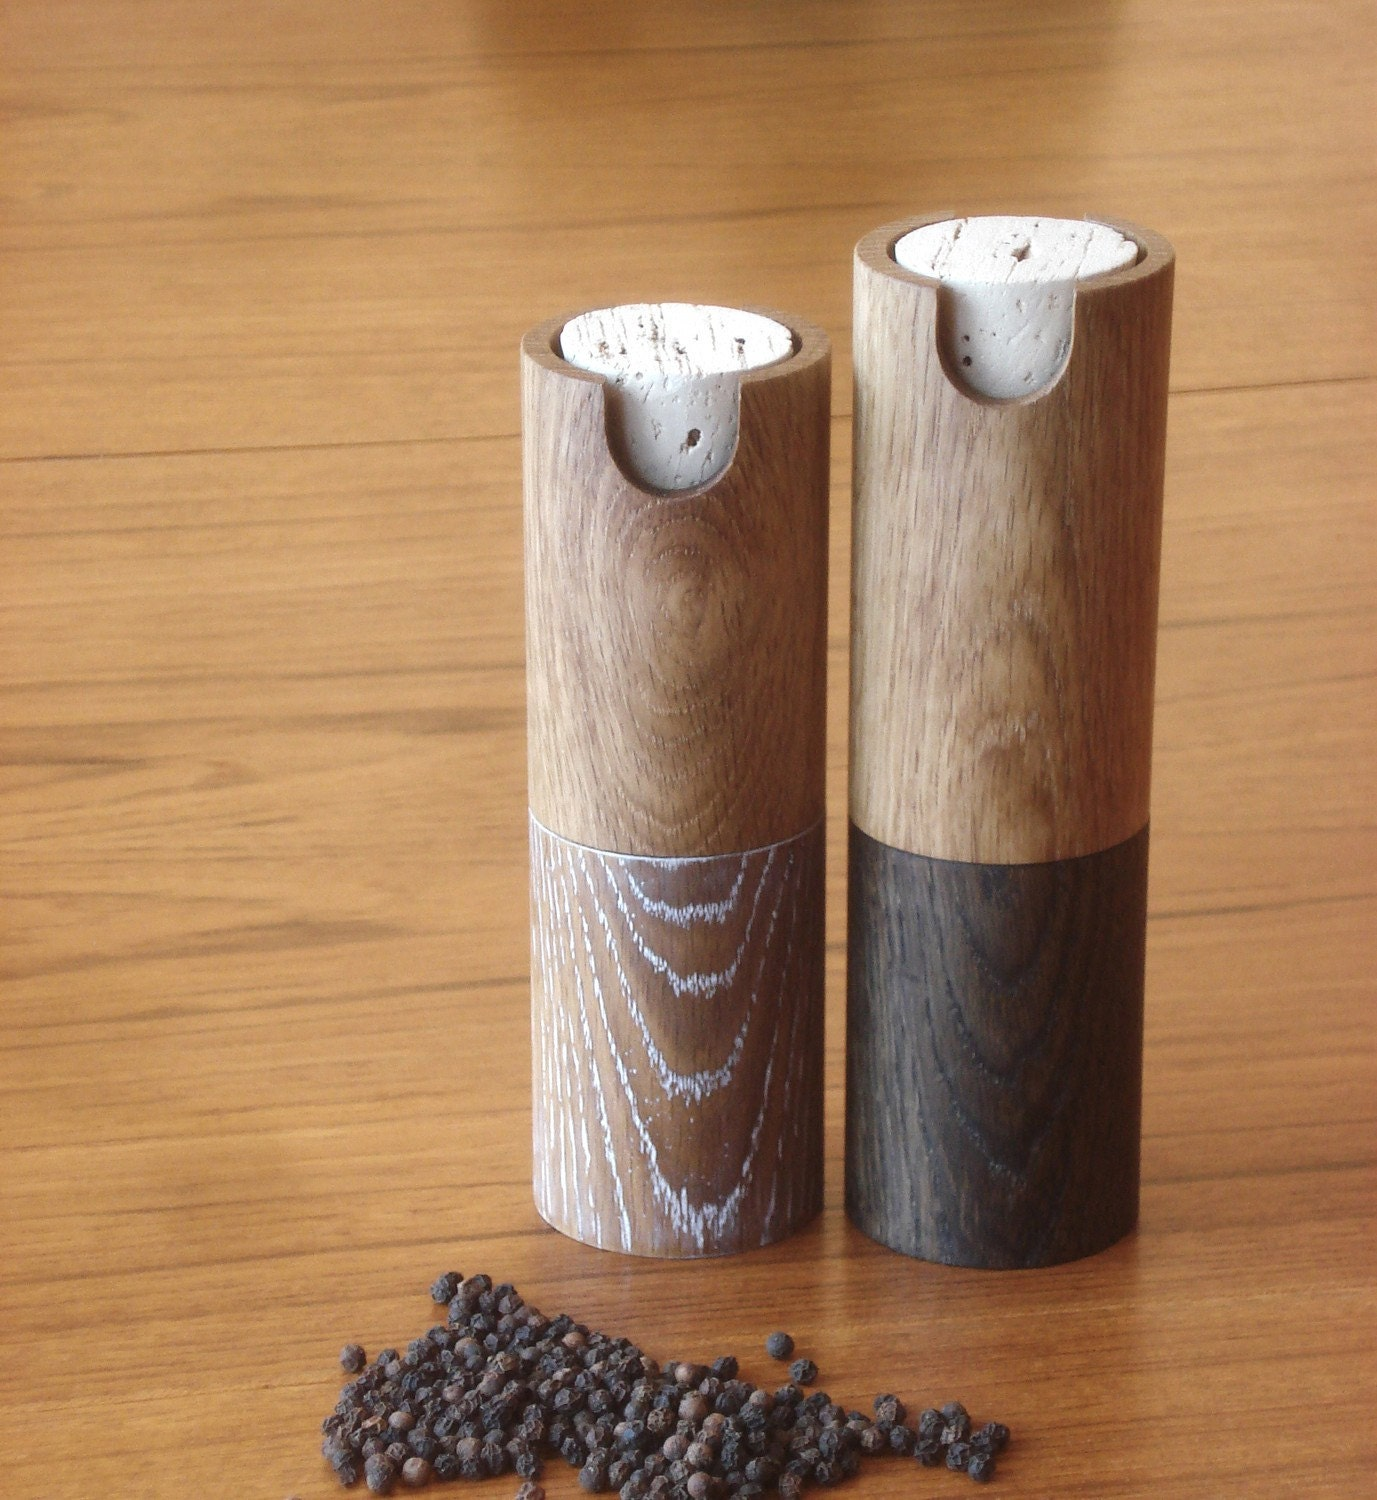 peppermill and salt grinder white oak pepper mill. Black Bedroom Furniture Sets. Home Design Ideas